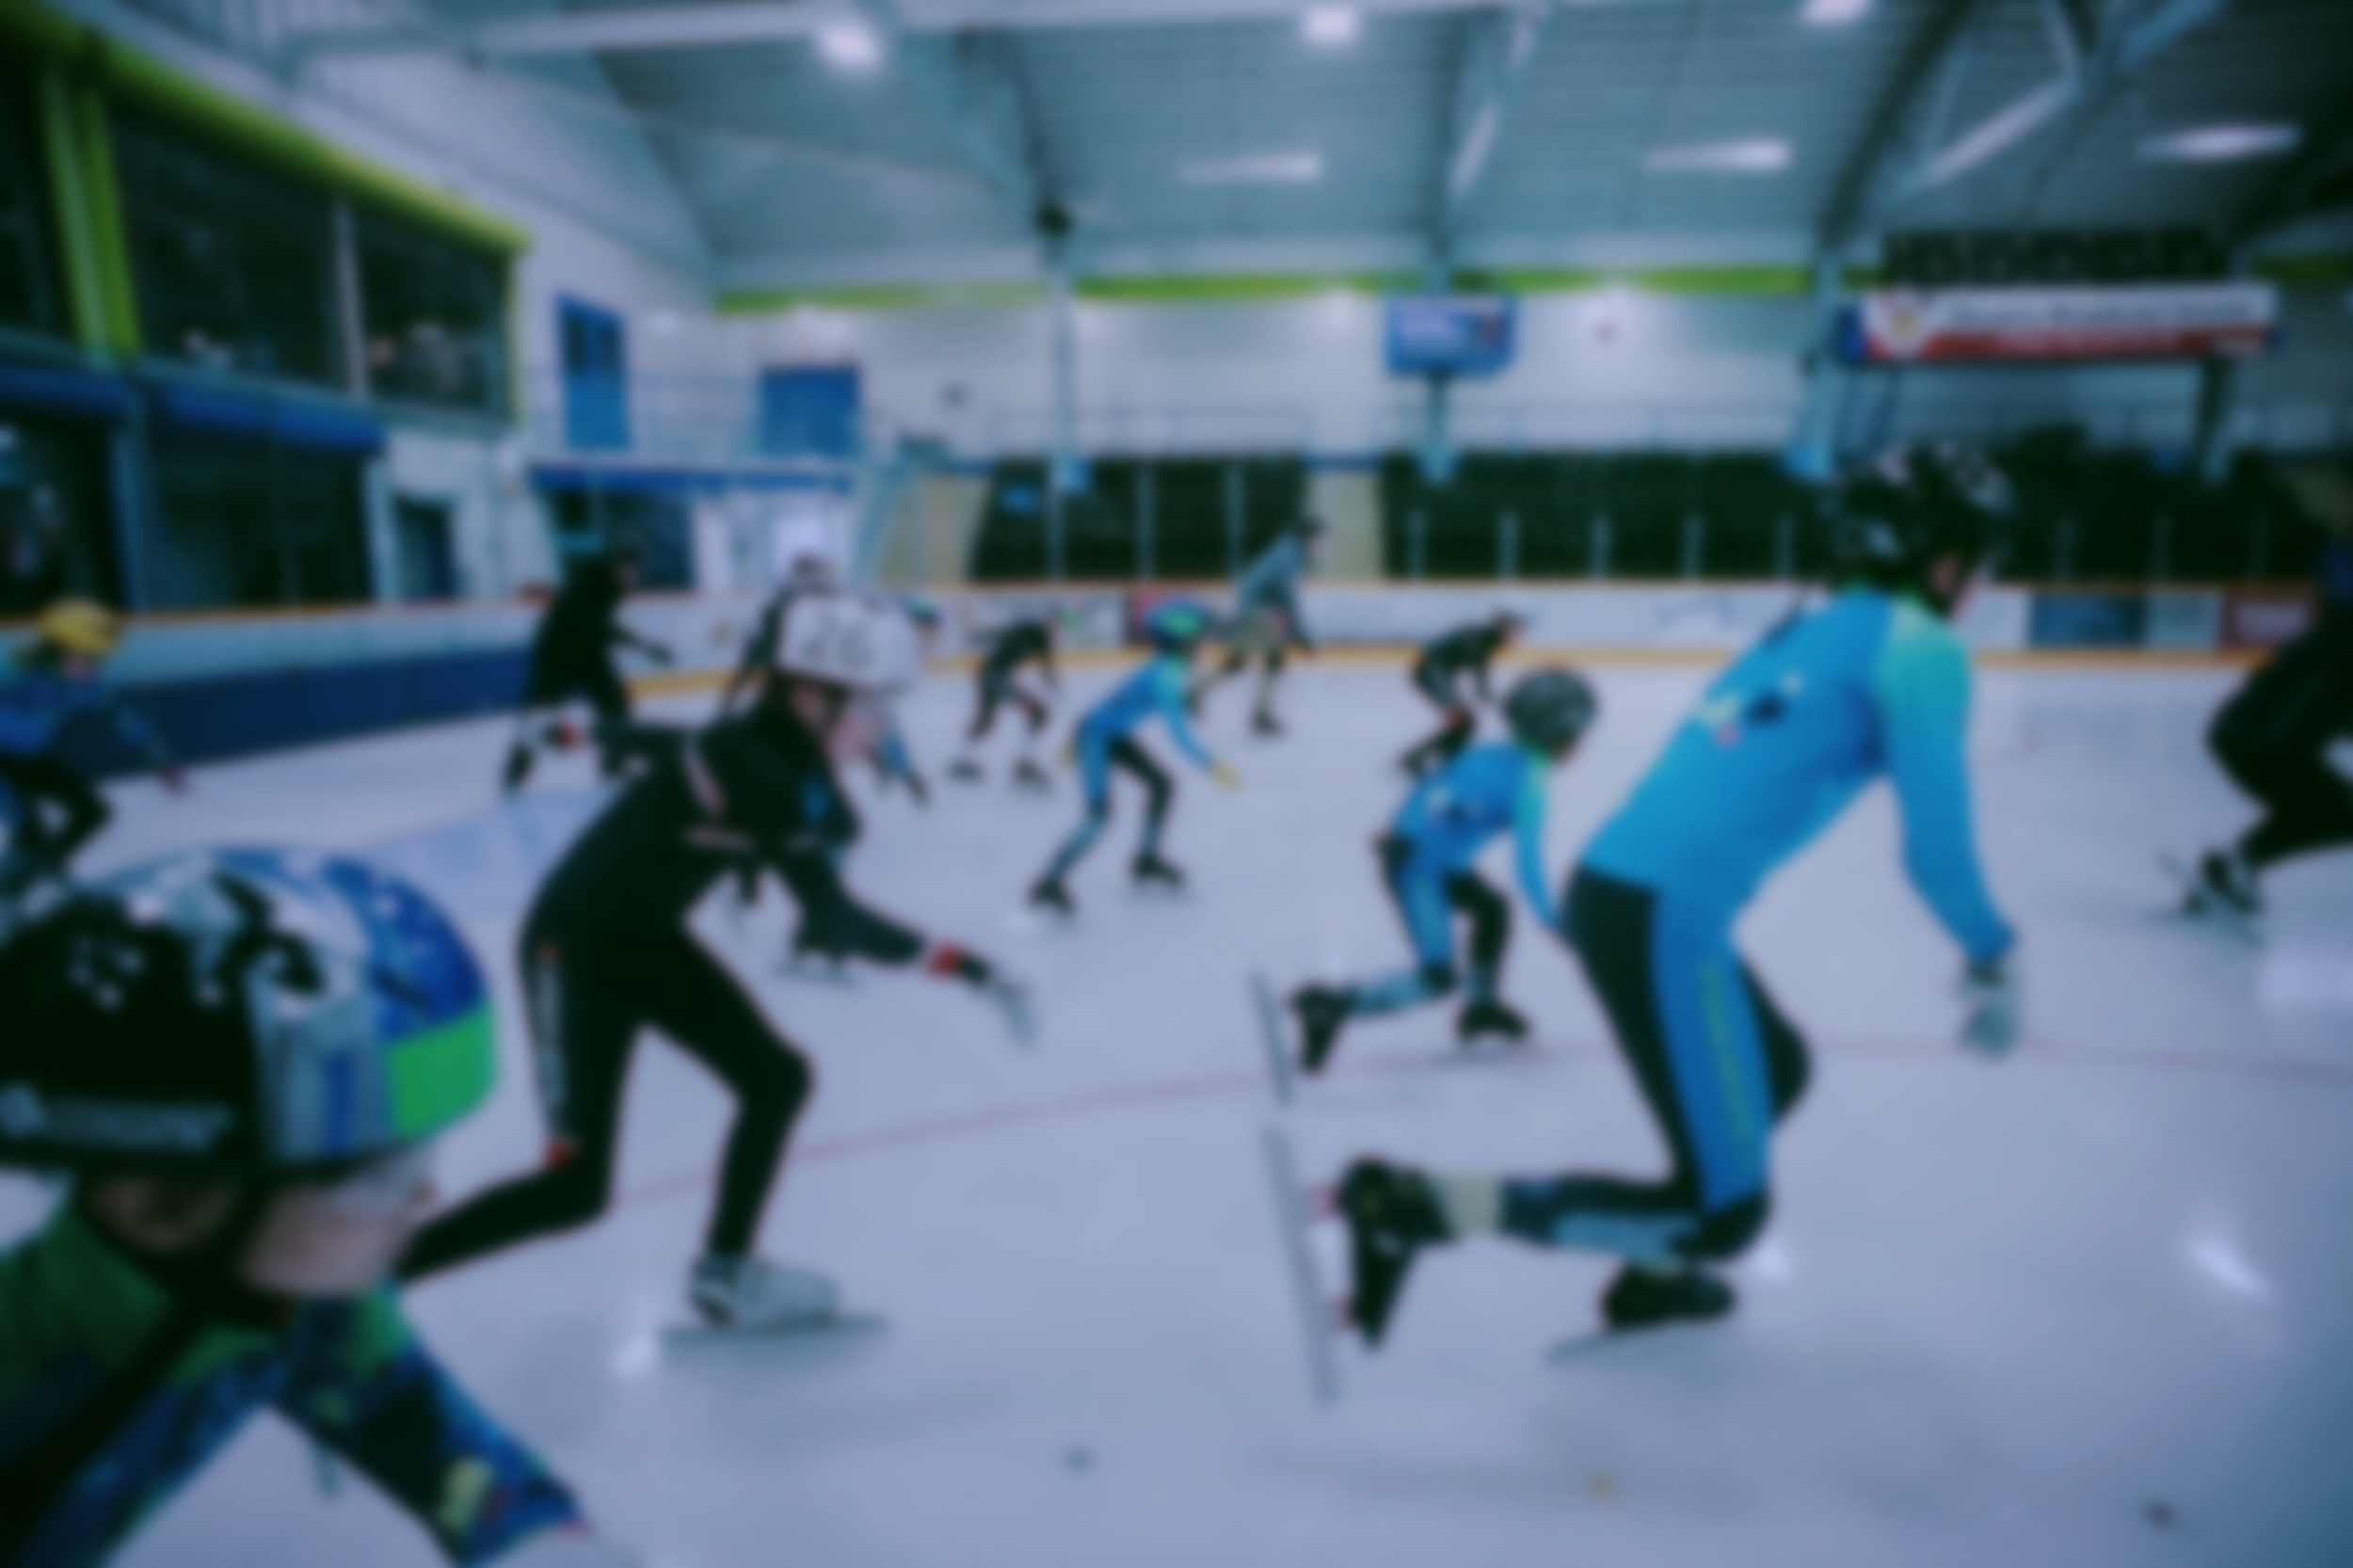 Want to try speed skating? -